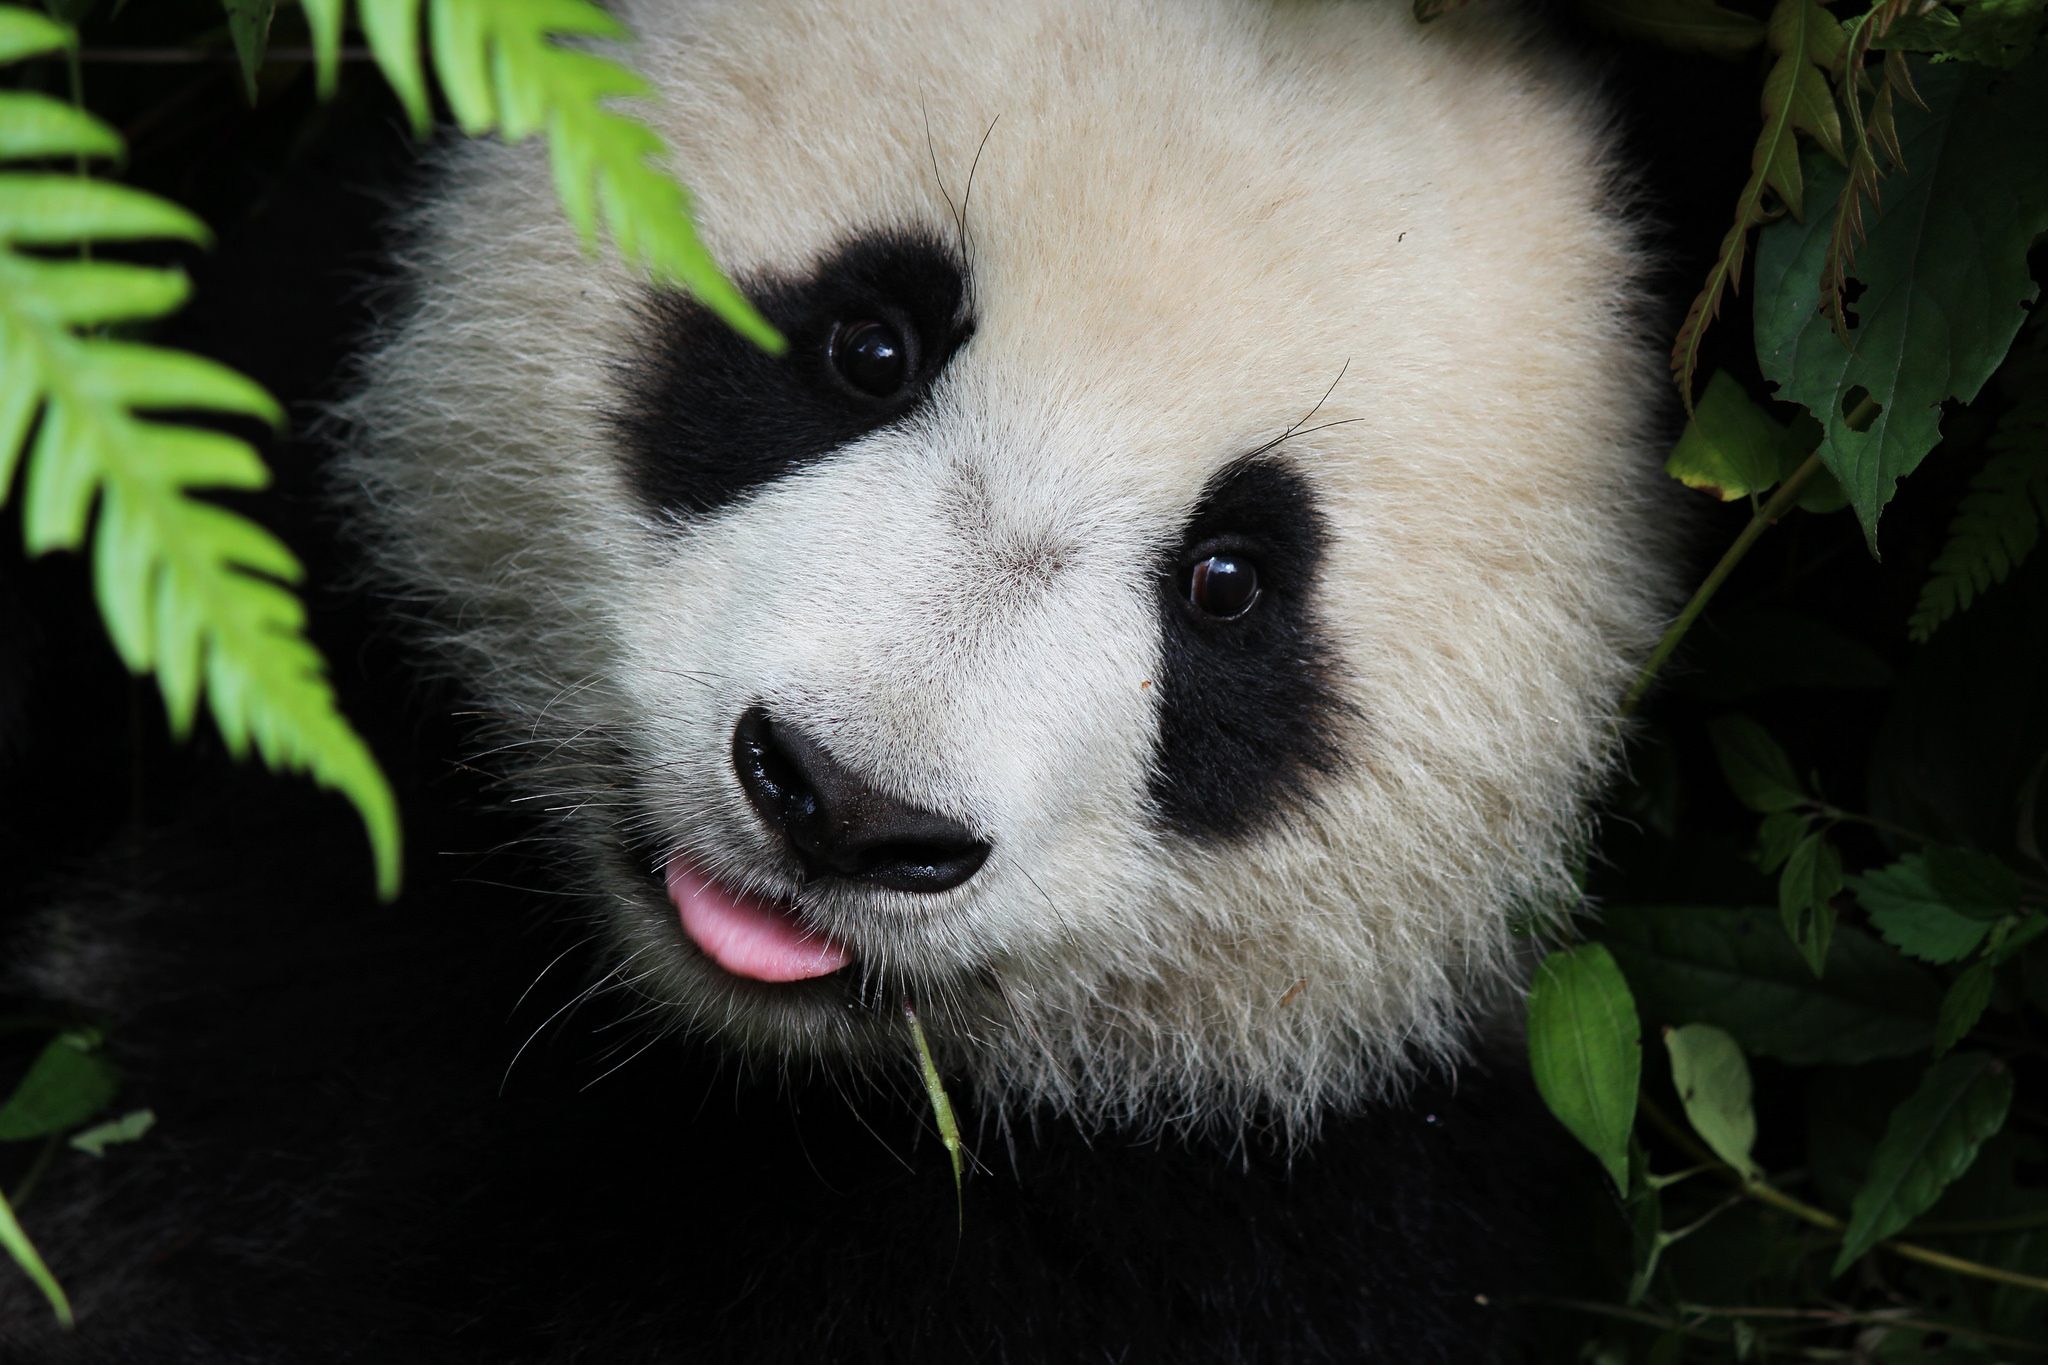 Panda cub, by Marc Blickle from Flickr